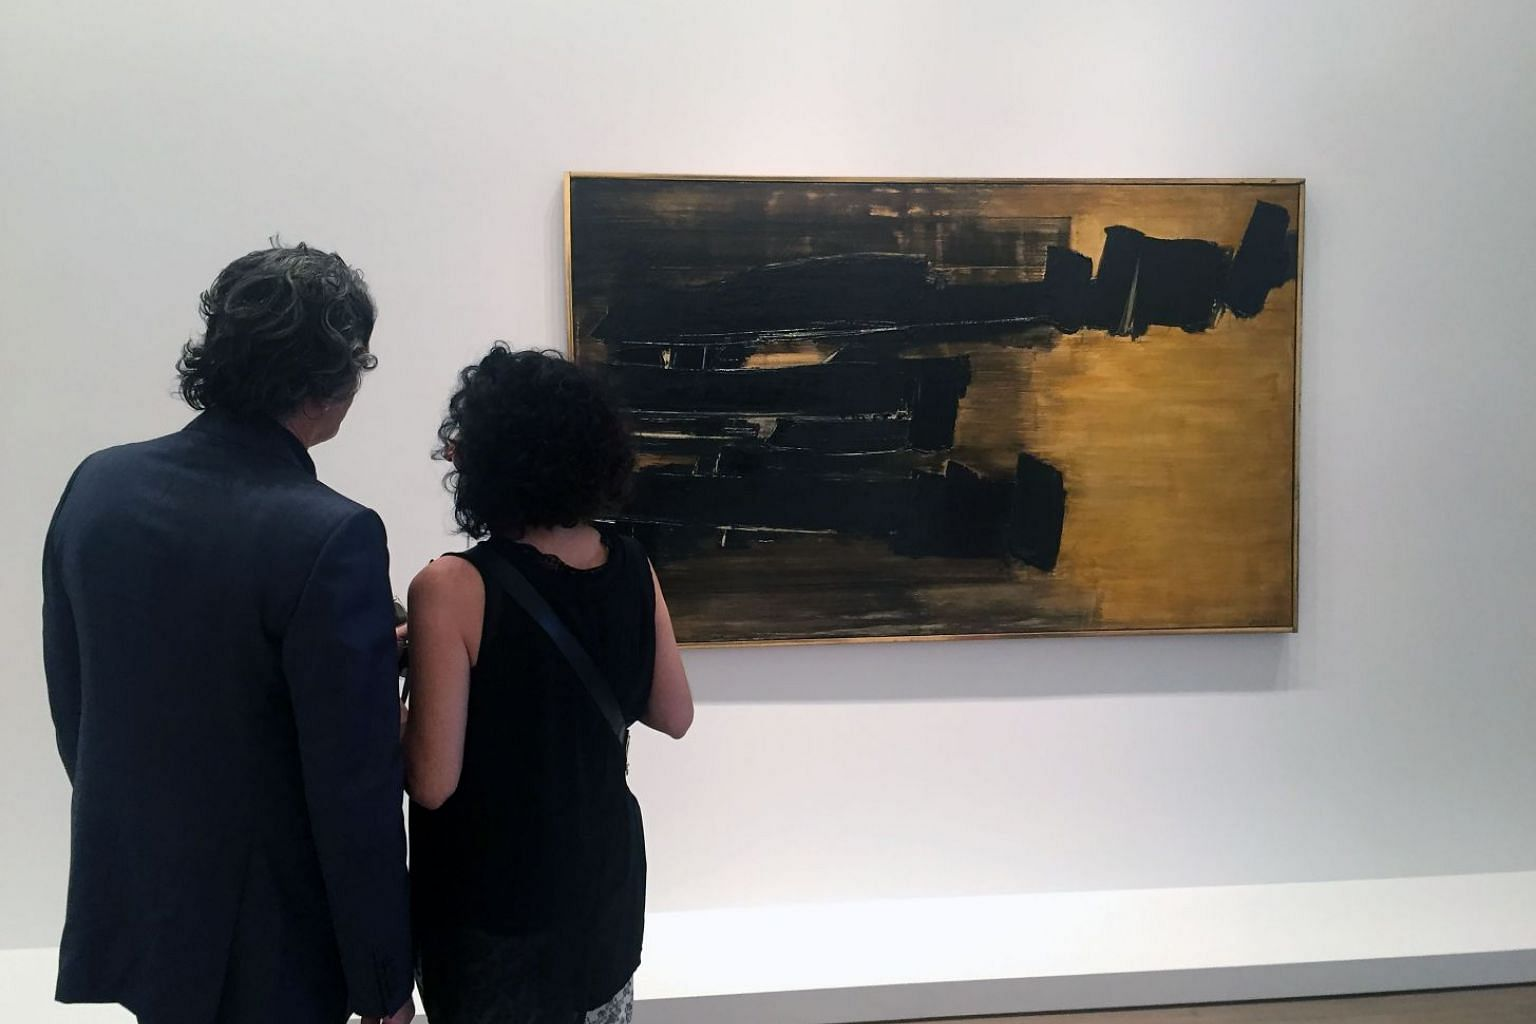 The exhibition, Pierre Soulages: A Century, by French painter Pierre Soulages at the Levy Gorvy gallery in New York.